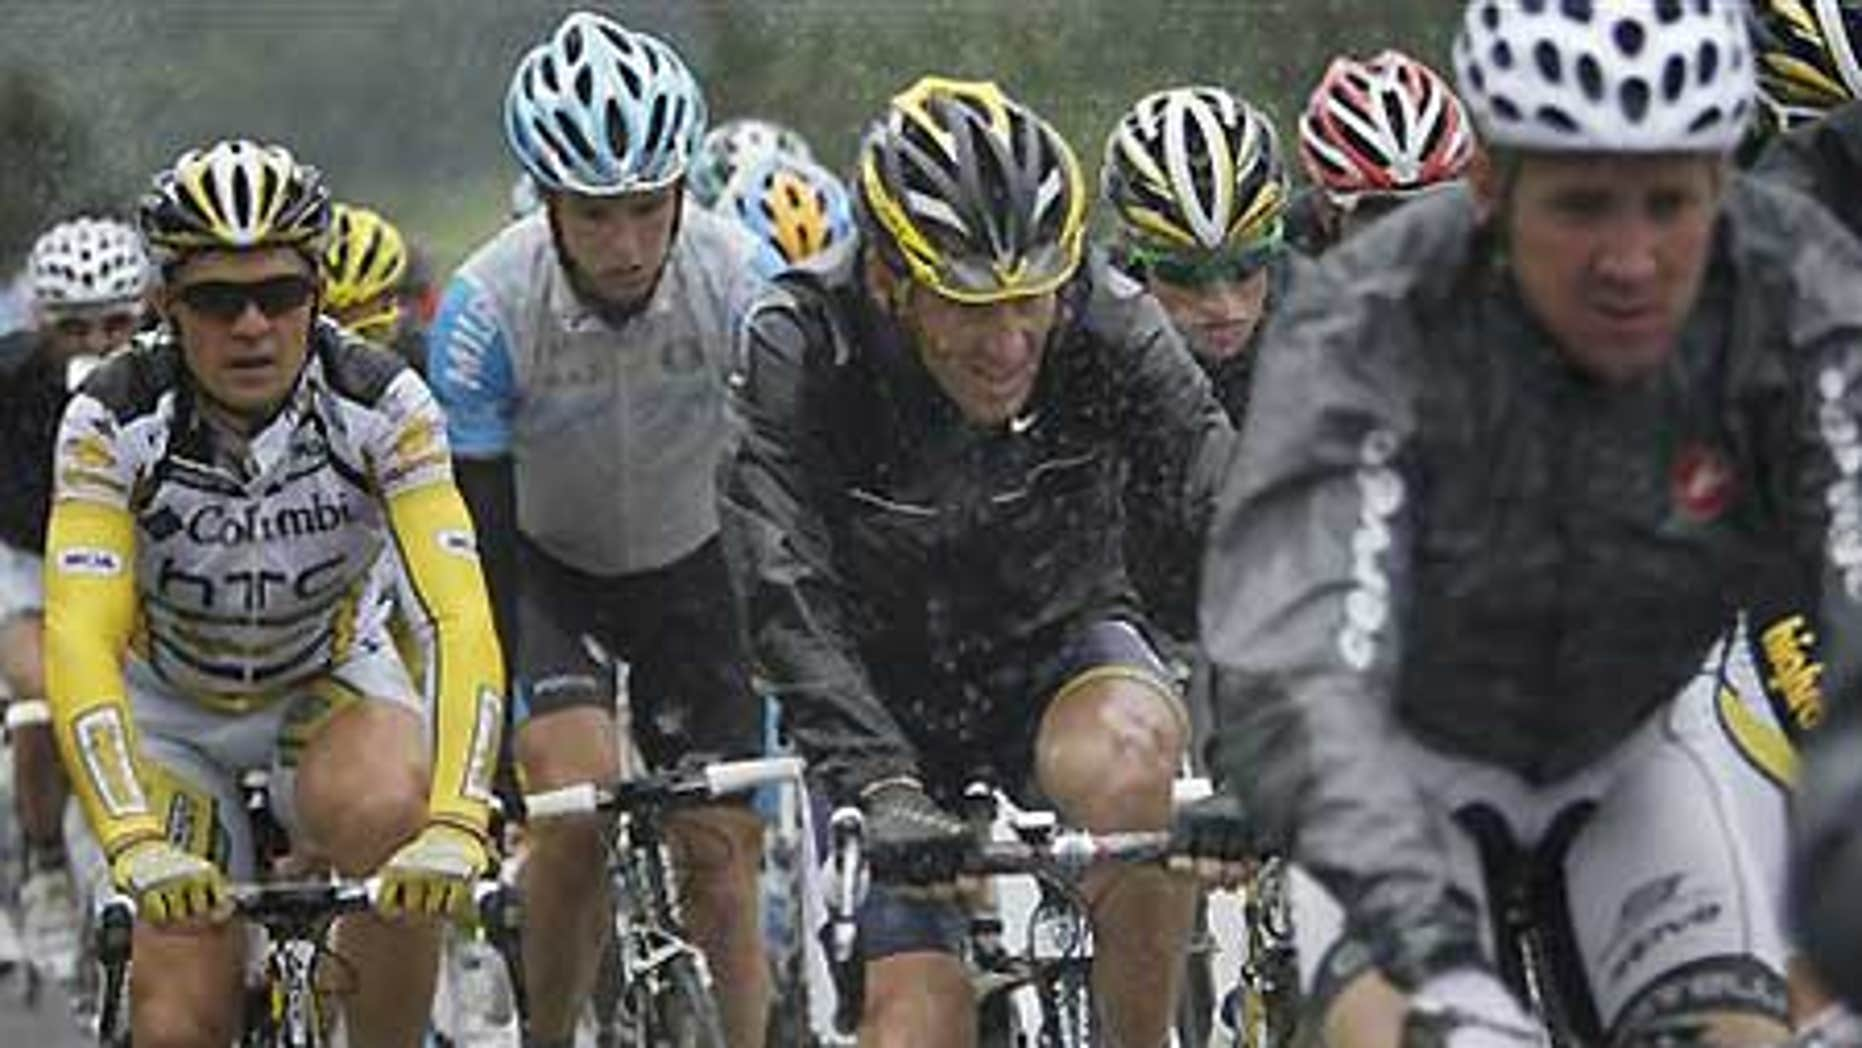 Lance Armstrong, center, in the pack during the 13th Stage of the Tour de France.